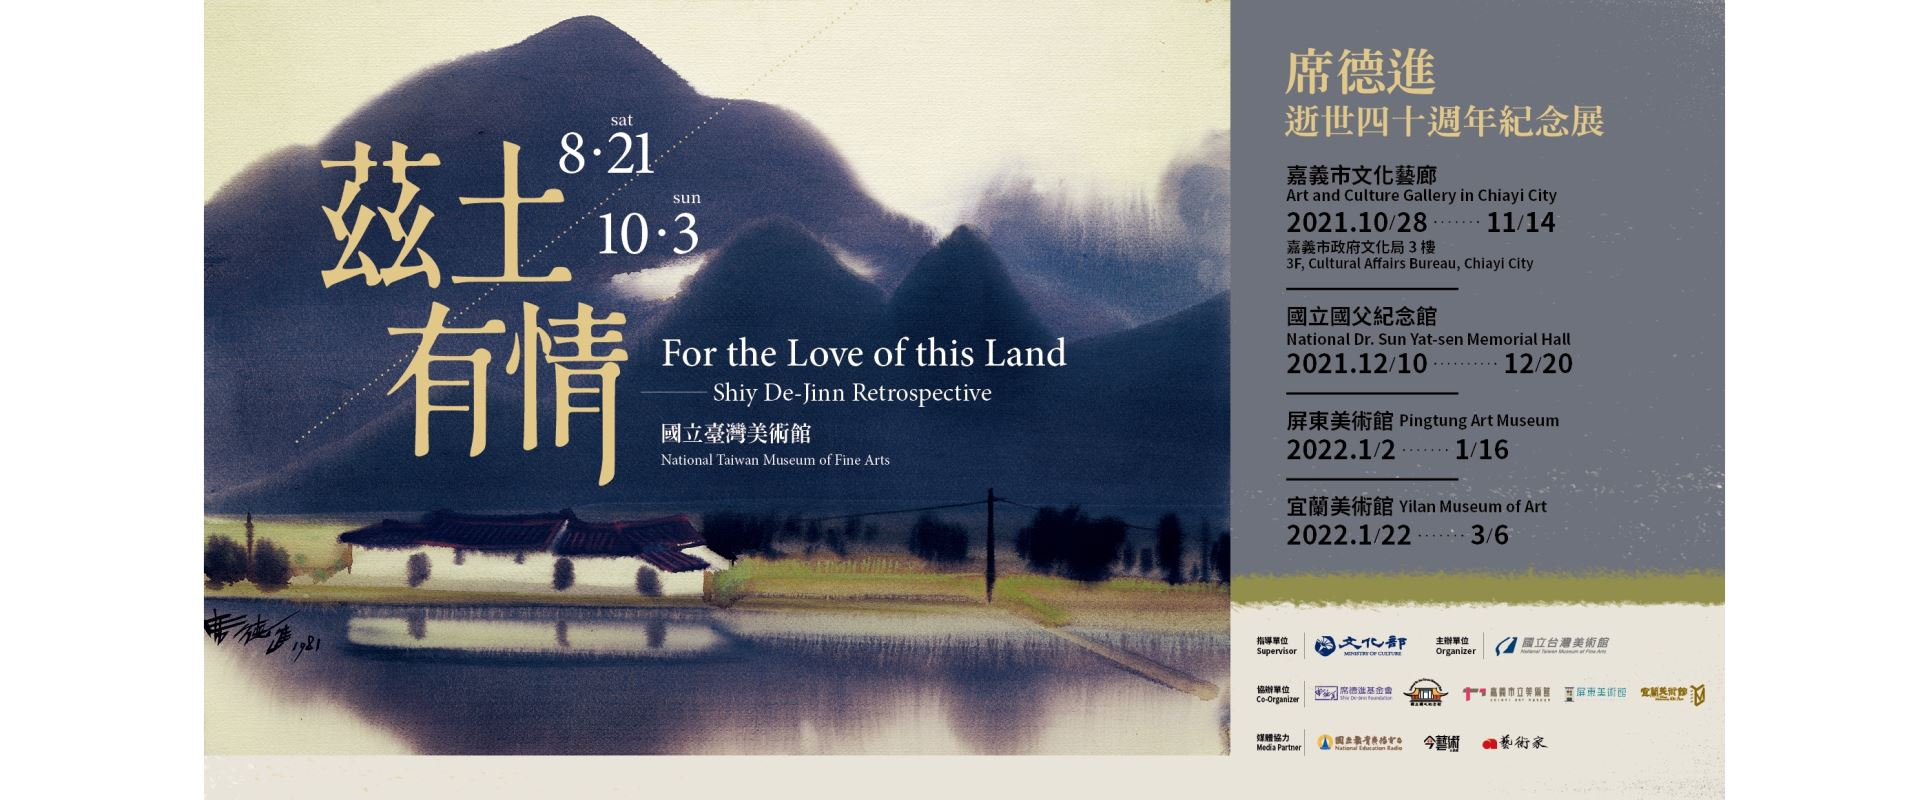 """NTMoFA launches exhibition """"For the Love of this Land: Shiy De-Jinn Retrospective""""opennewwindow"""